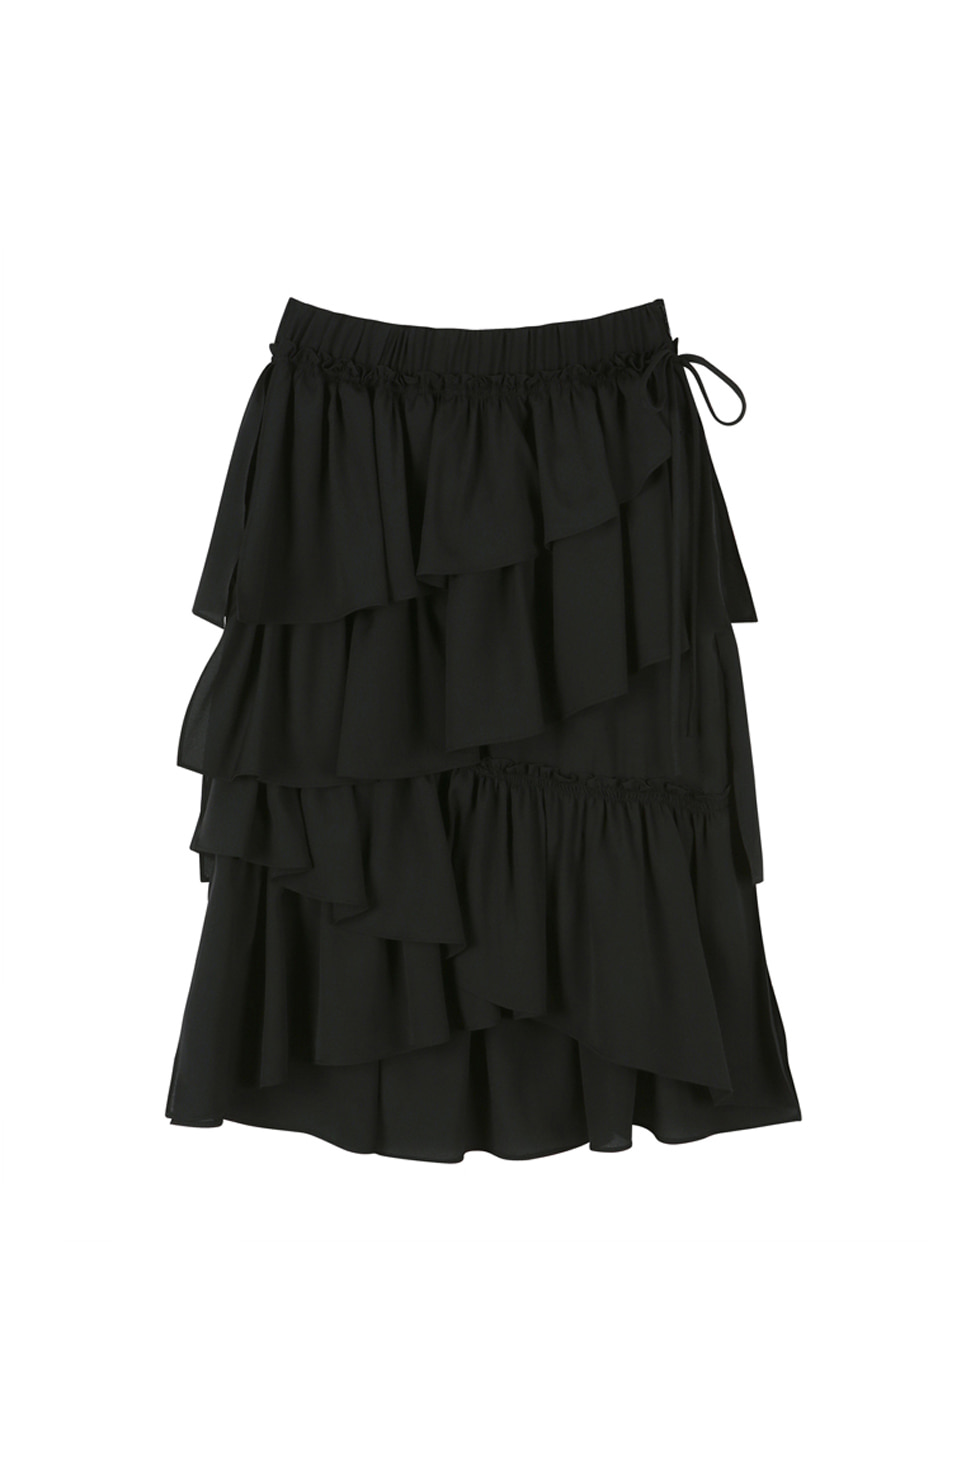 CAN CAN SKIRT - BLACK